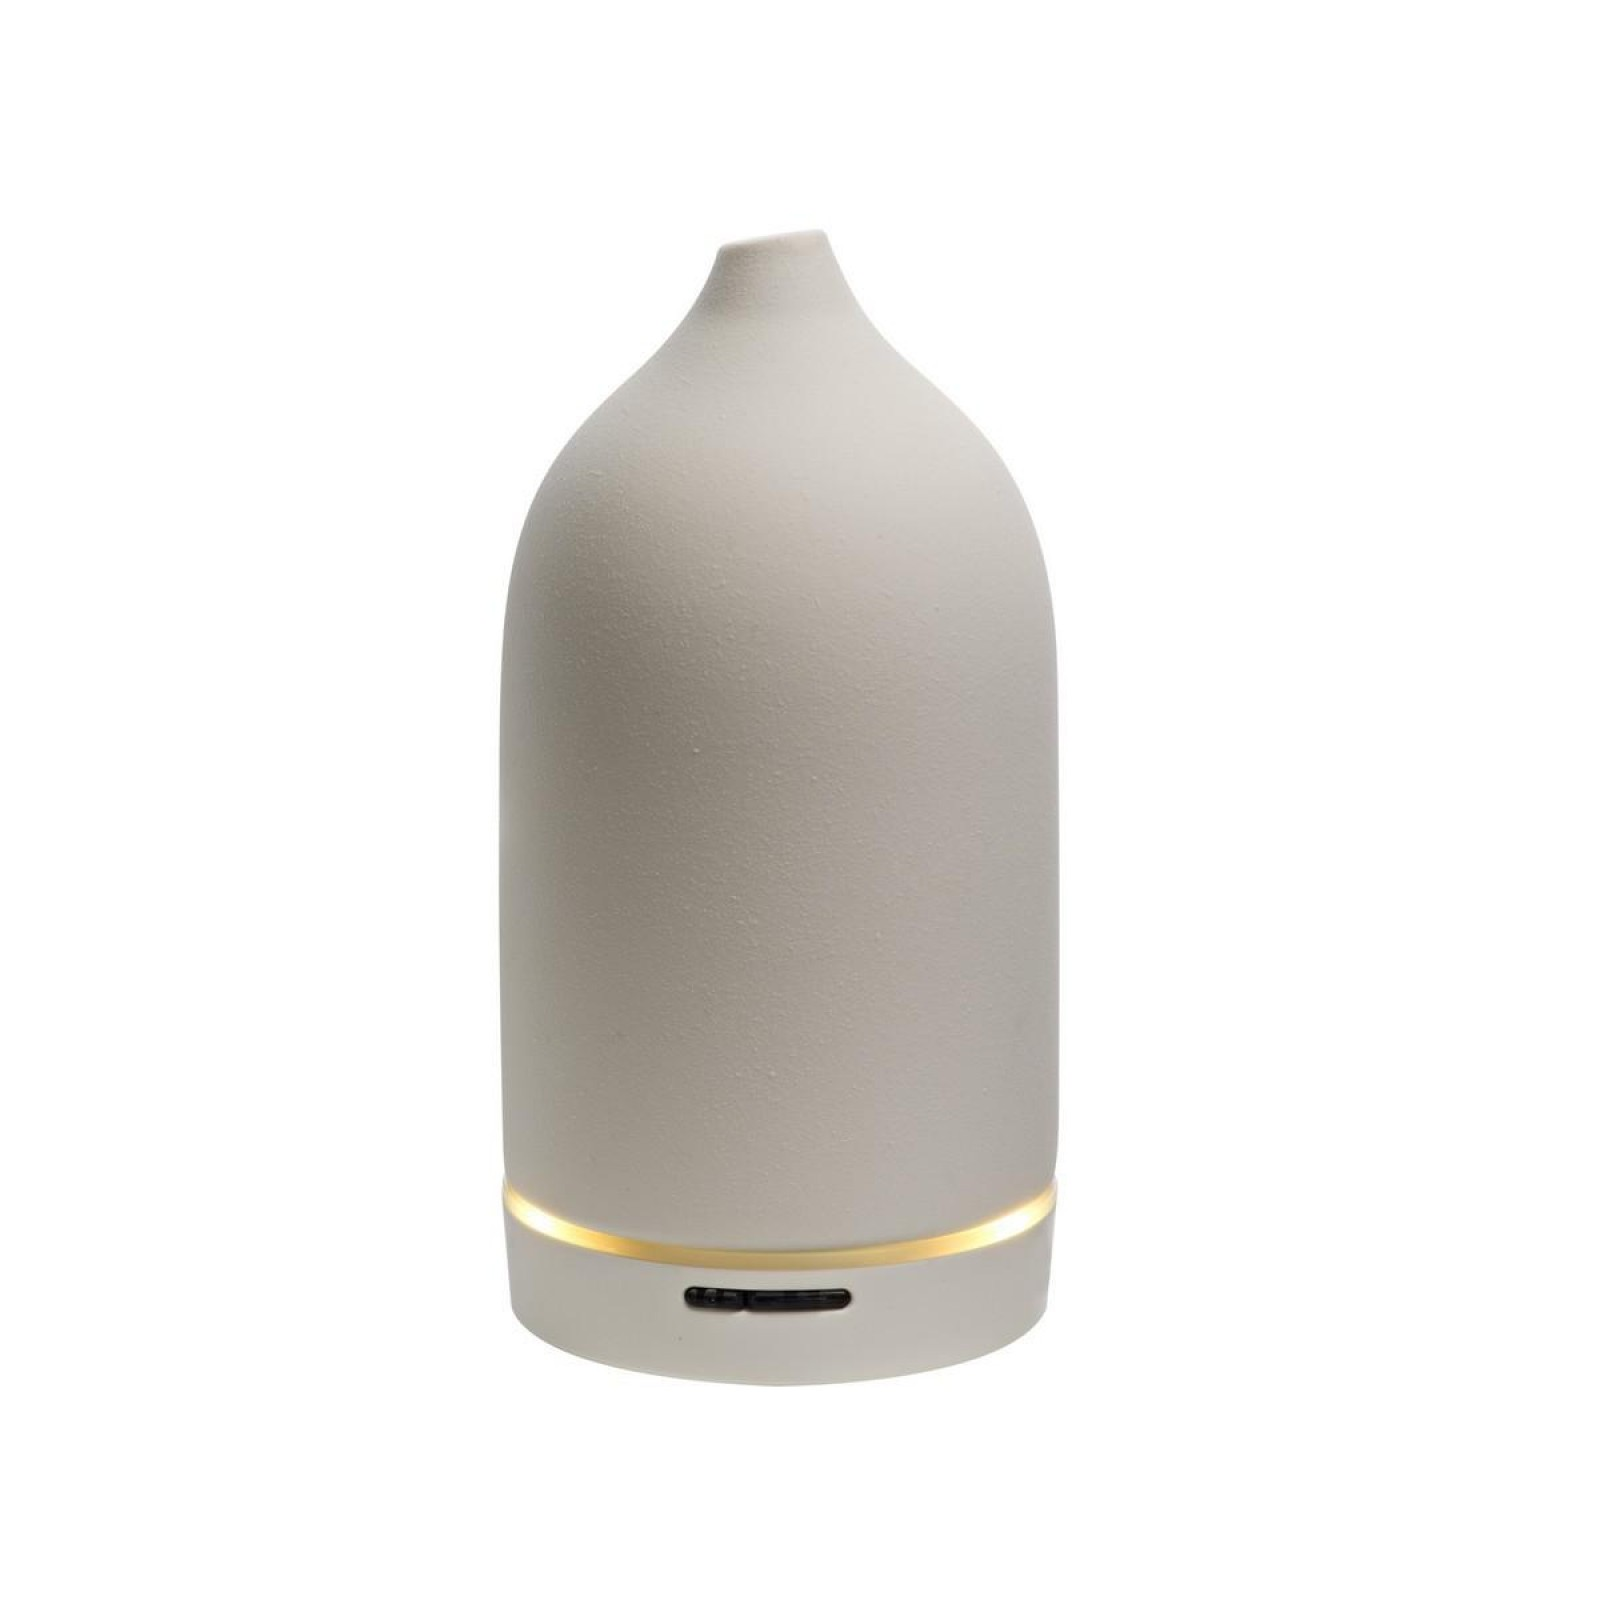 Casa Aroma Genie Ultrasonic Essential Oil Diffuser (White) - Toast Living